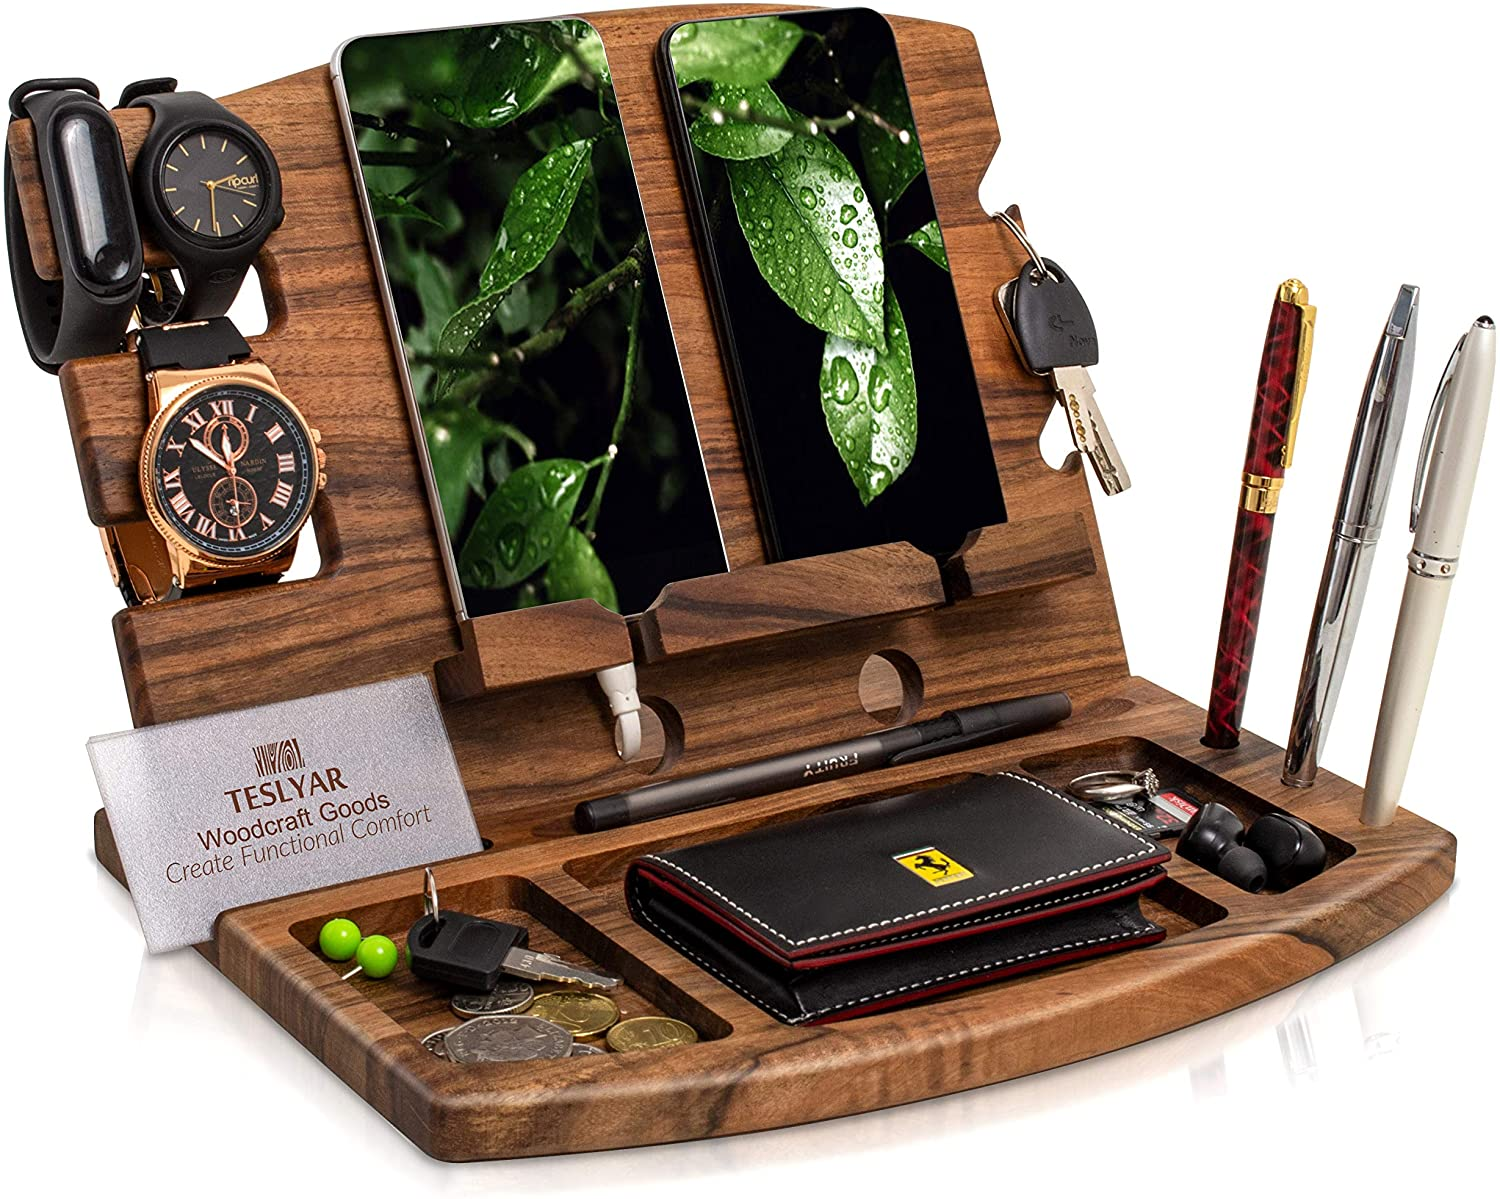 Mens Gifts Phone Holder made of Wood